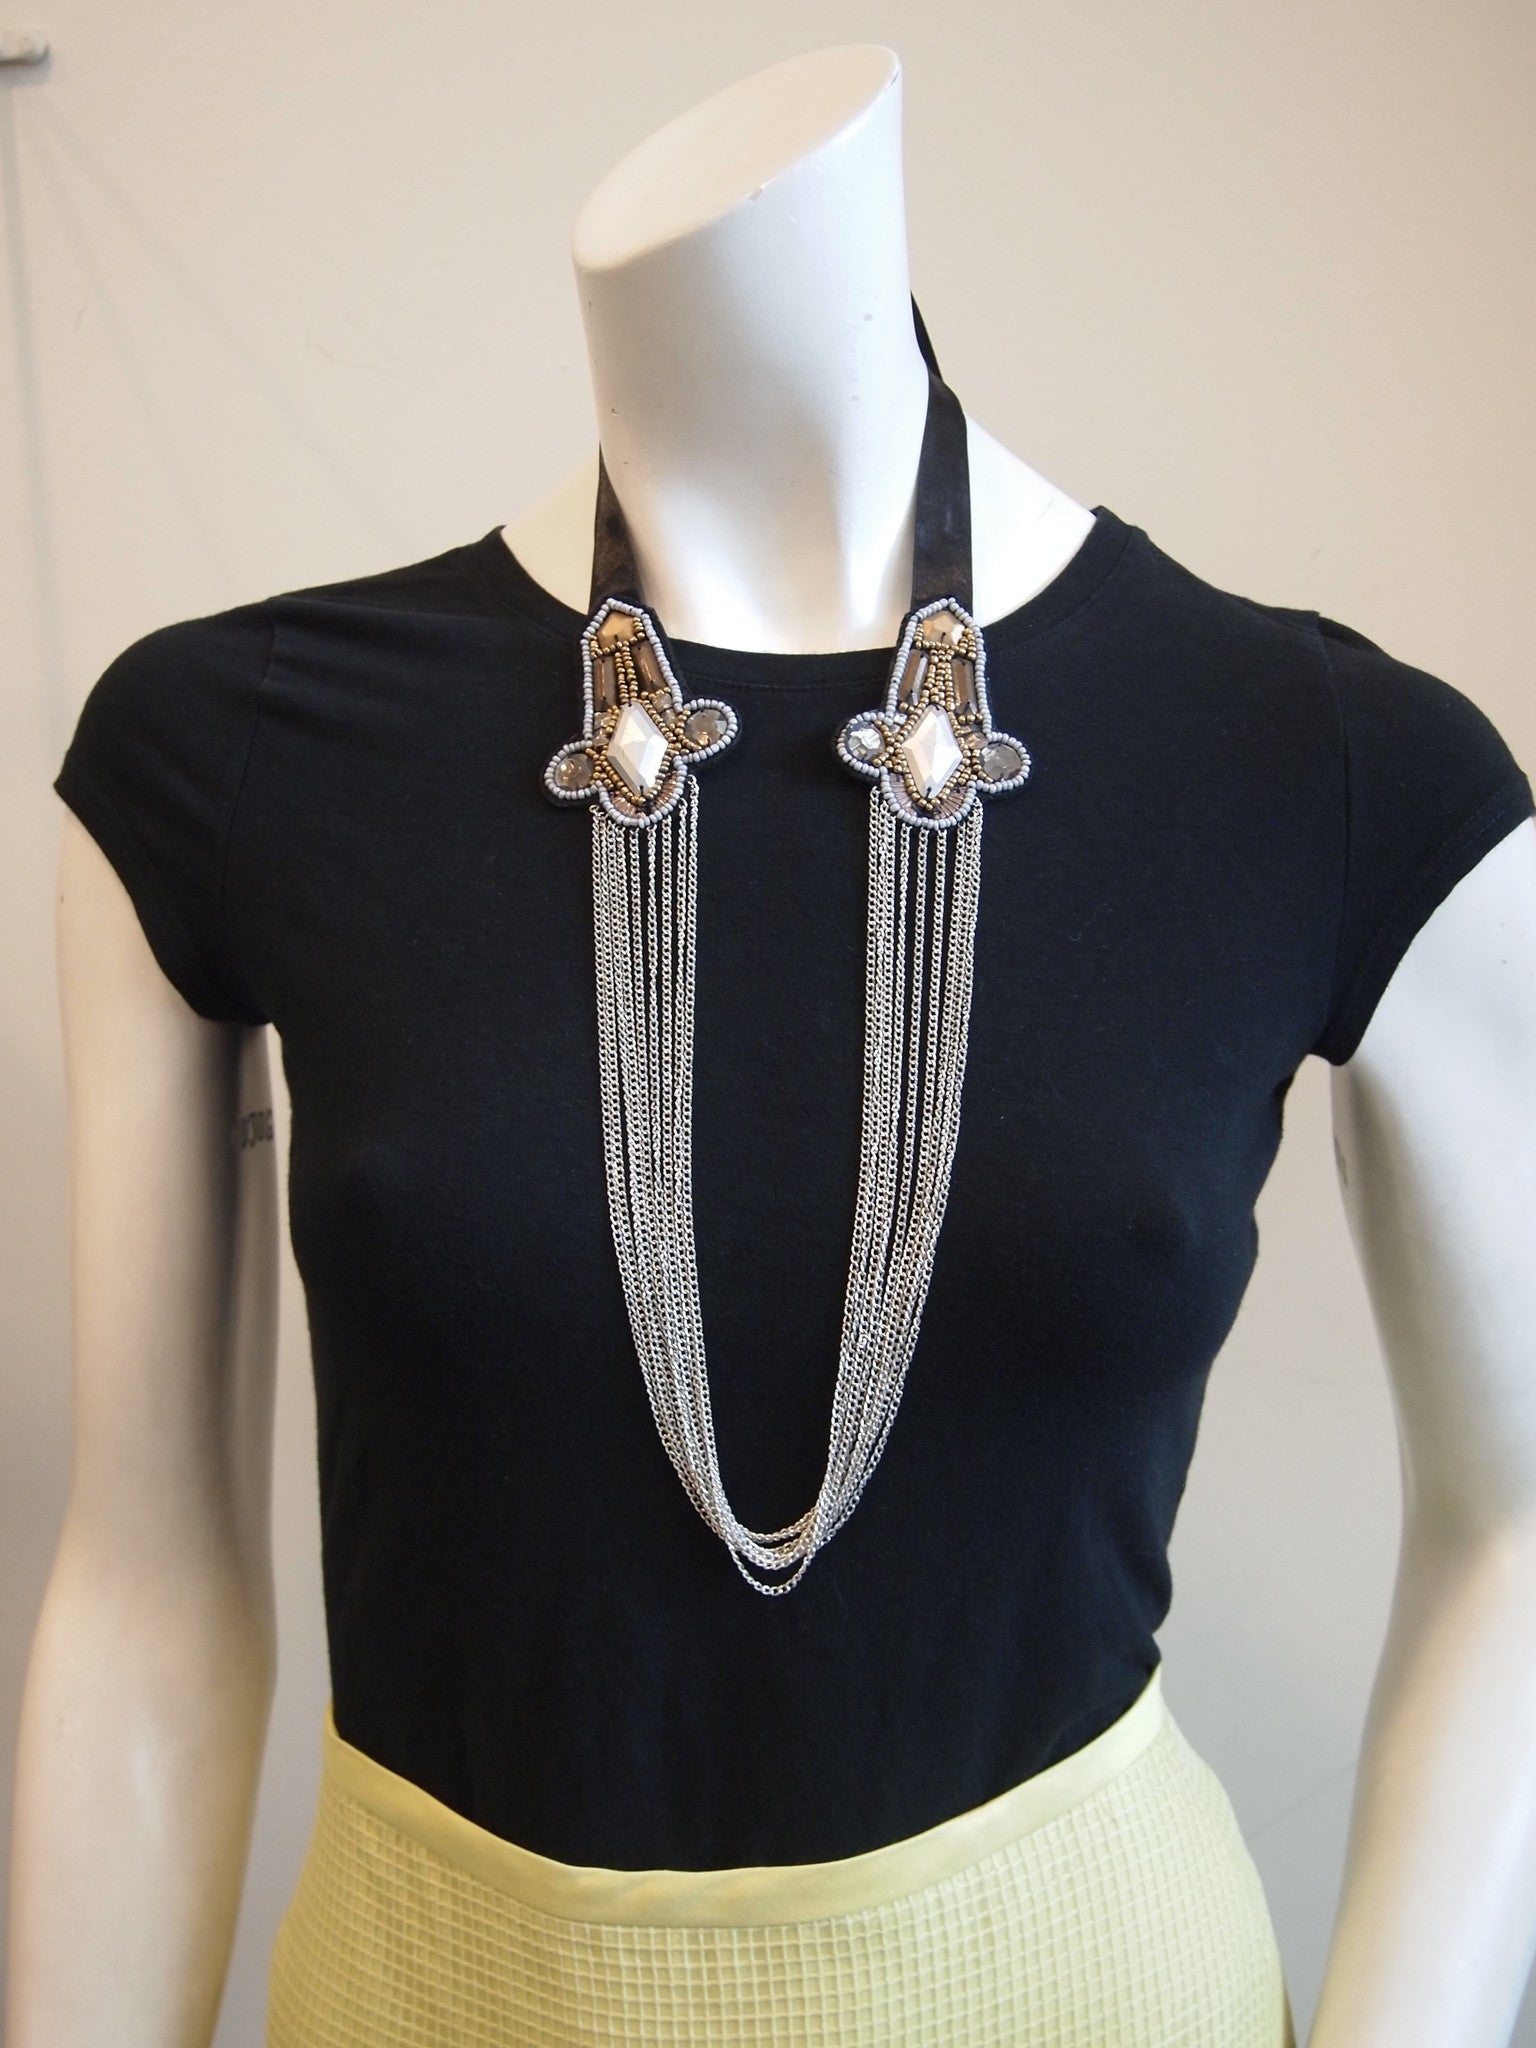 Handmade Embellished Necklace - Black Arrow